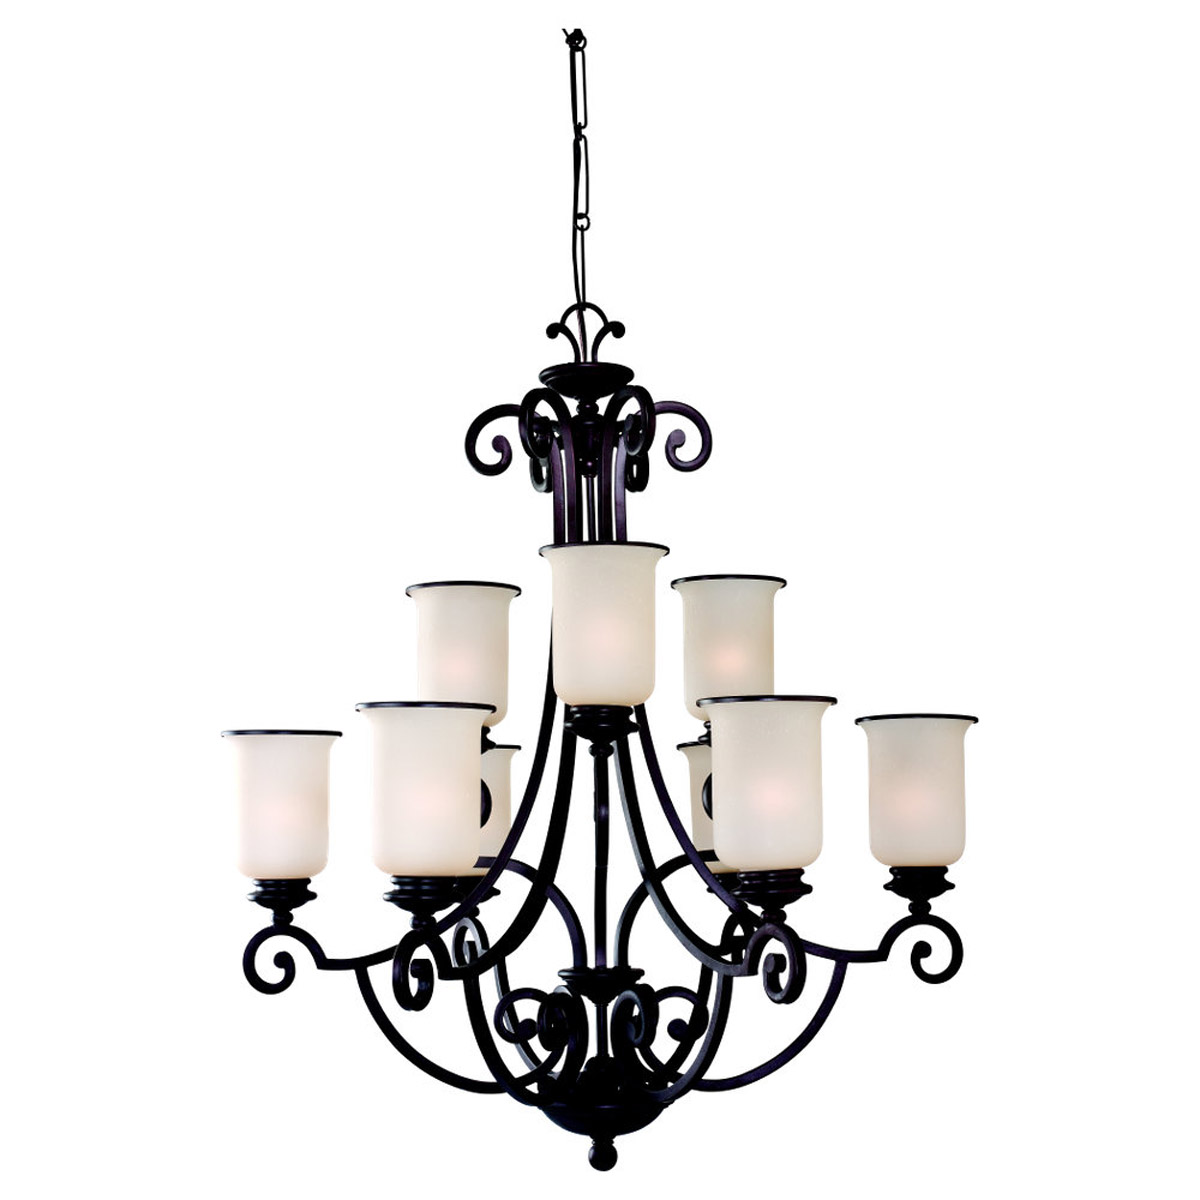 Sea Gull 31147BLE-814 Acadia 9 Light 32 inch Misted Bronze Chandelier Ceiling Light in Fluorescent photo